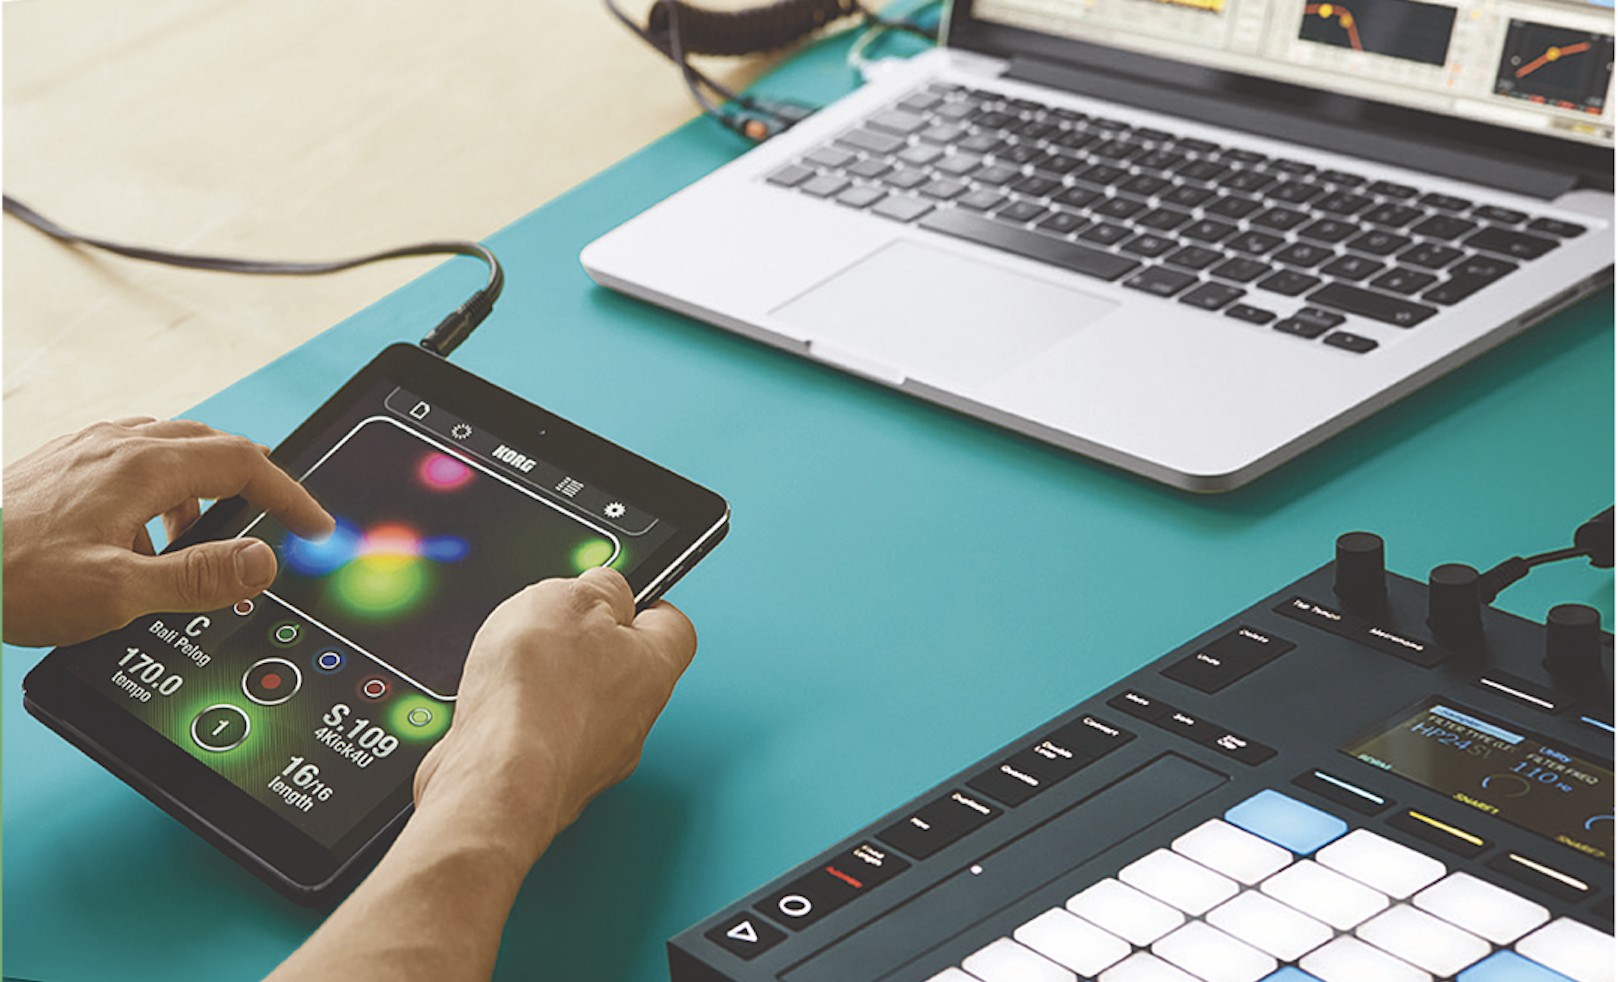 Sync with Link - Using Ableton Link to sync your computers and iOS